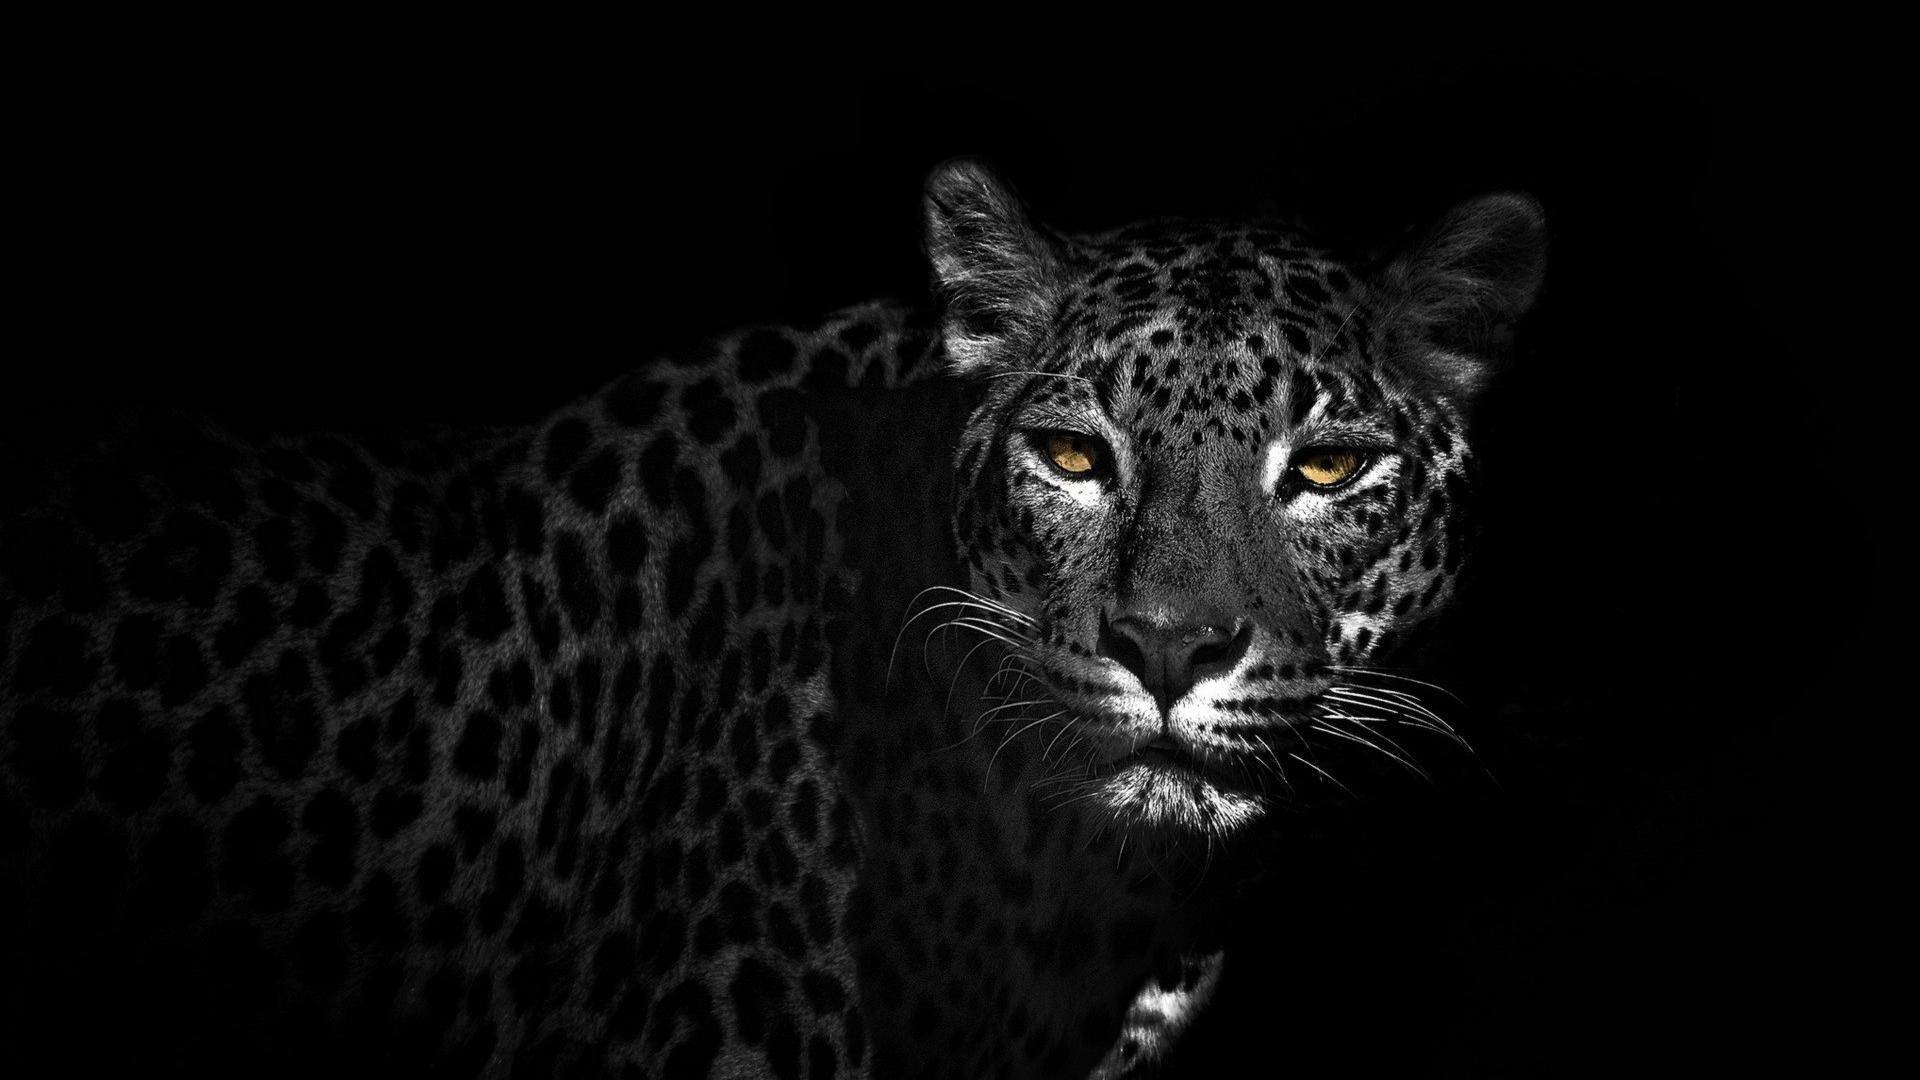 Black And White Animal Wallpapers   Top Black And White 1920x1080